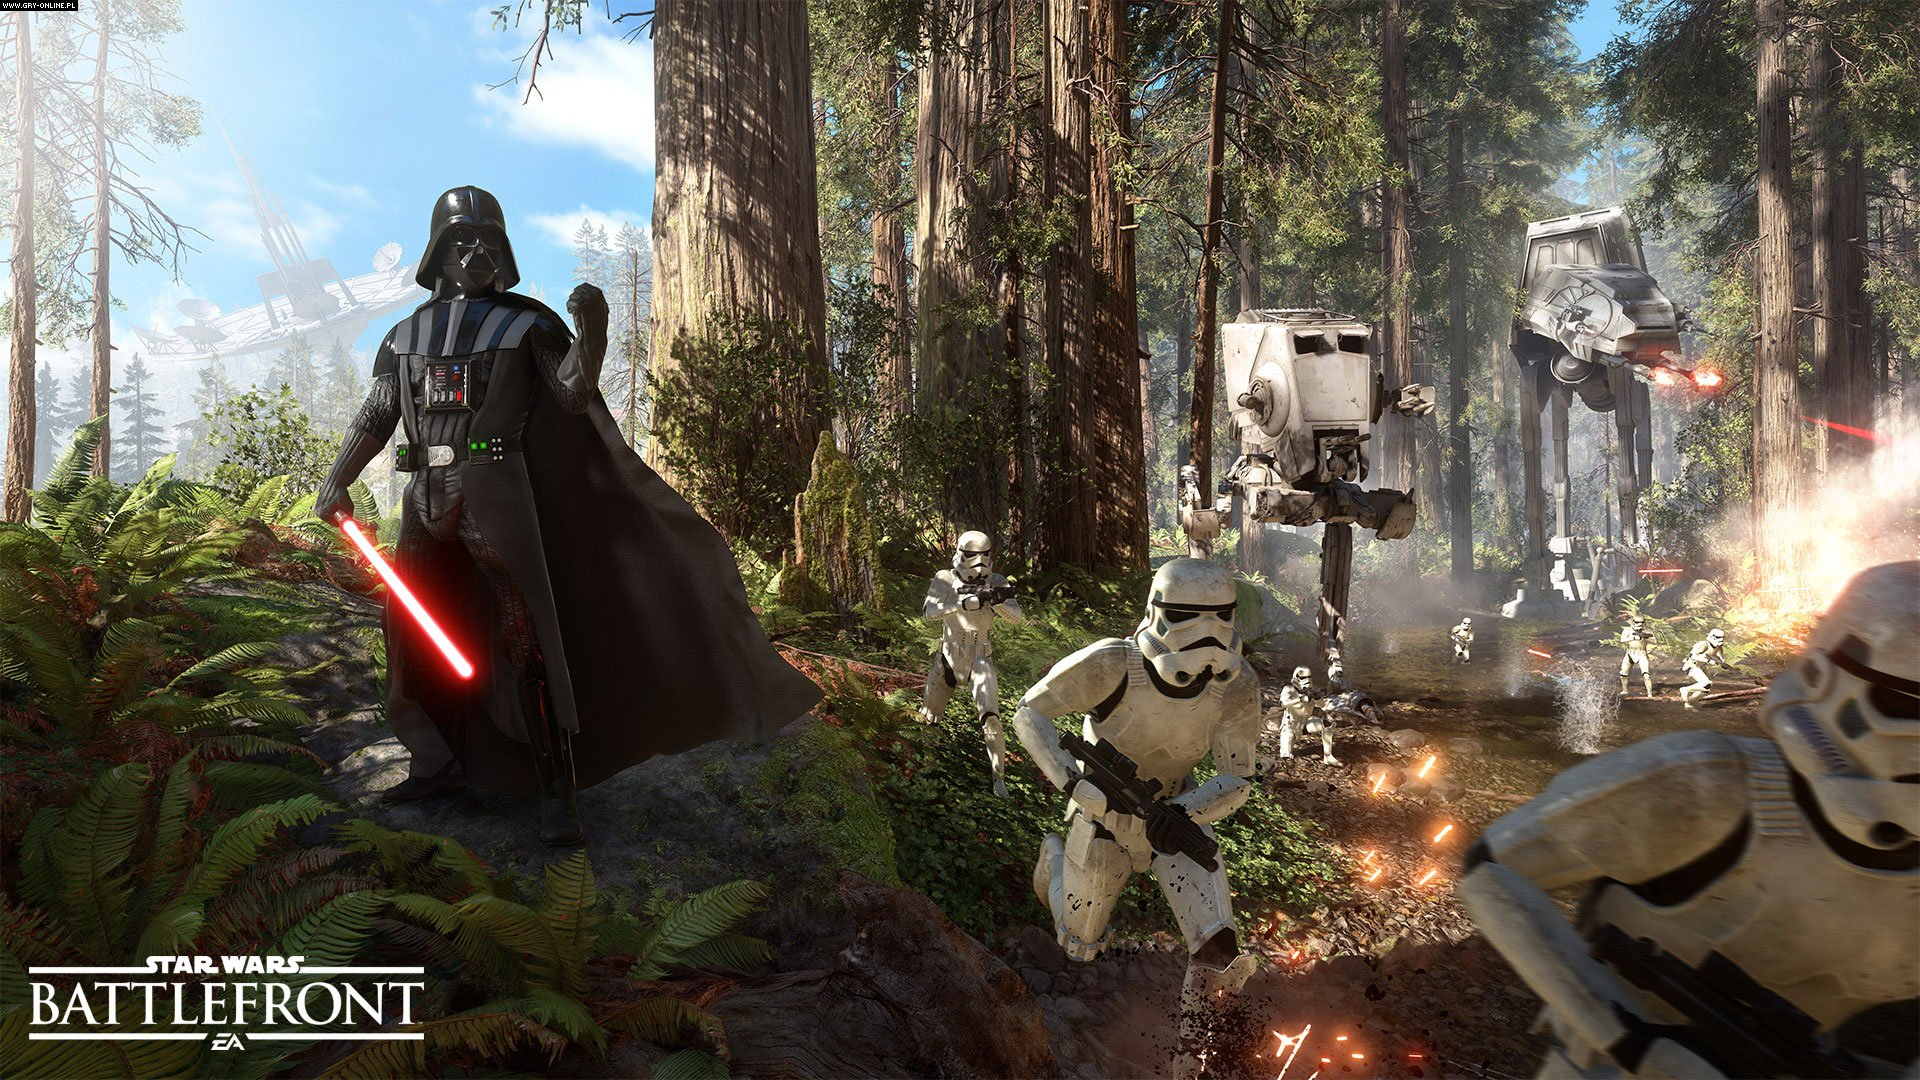 Star Wars: Battlefront XONE, PS4, PC Games Screen 4/27, EA Digital Illusions/EA DICE, Electronic Arts Inc.